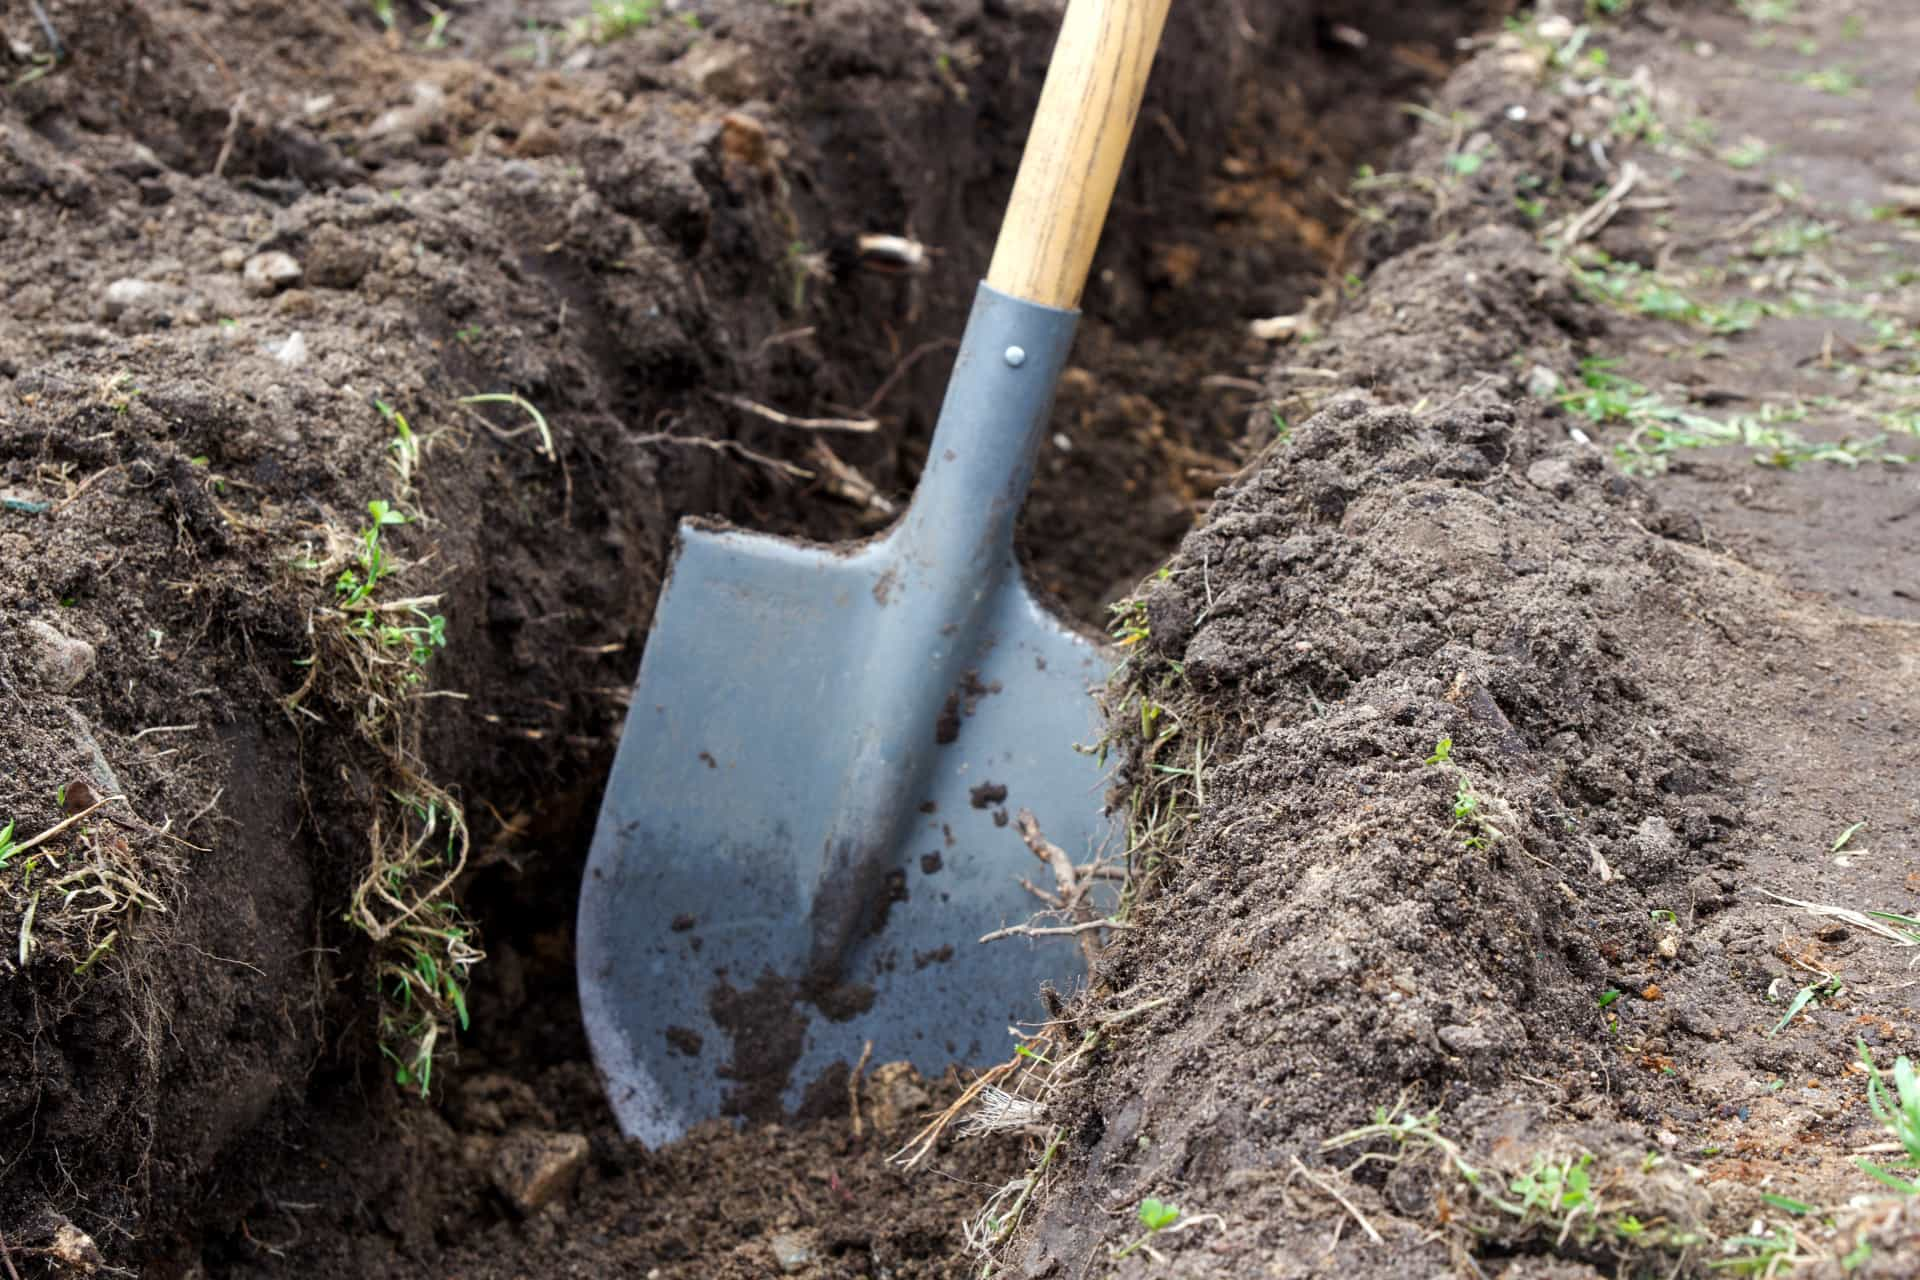 Tips and tricks to prepare your garden for spring